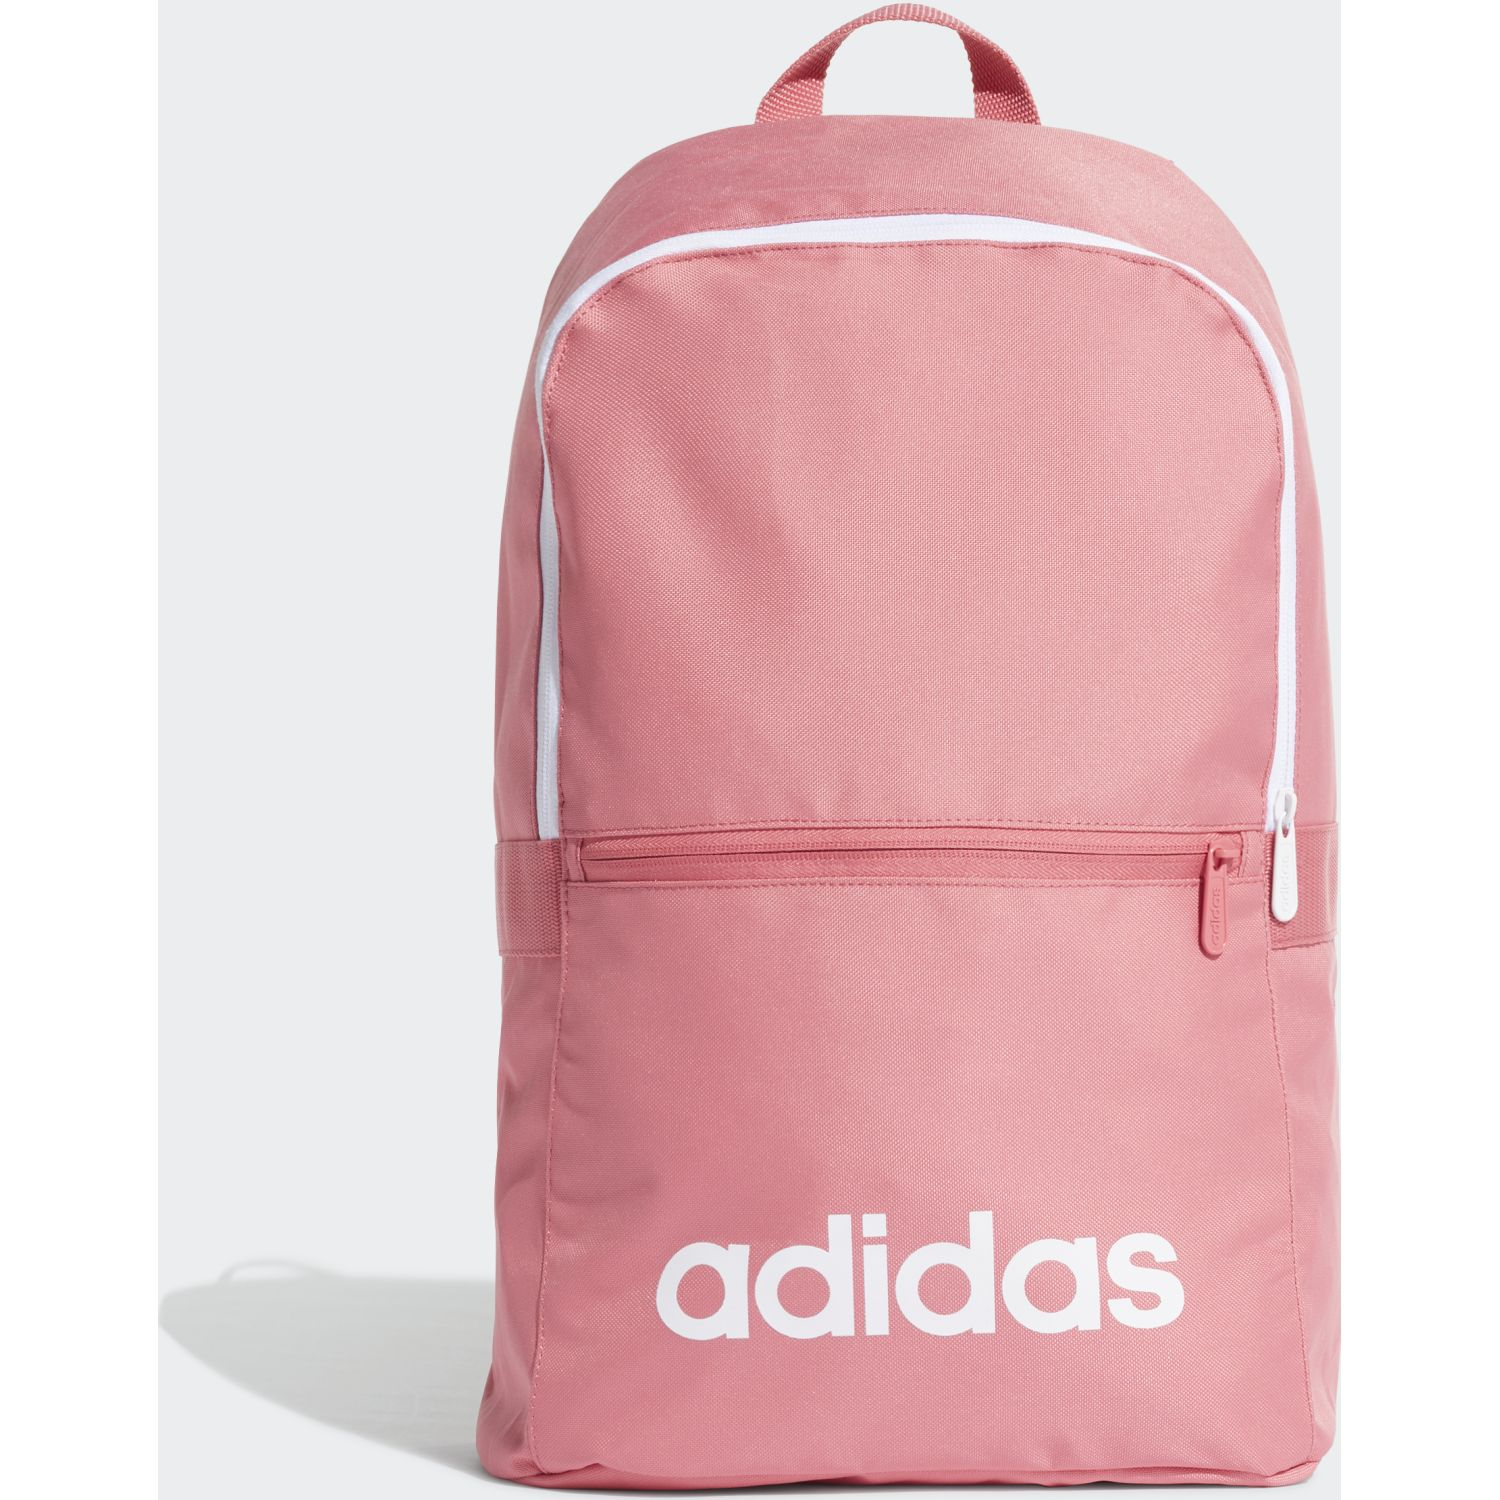 Adidas lin clas bp day Rosado Mochilas Multipropósitos